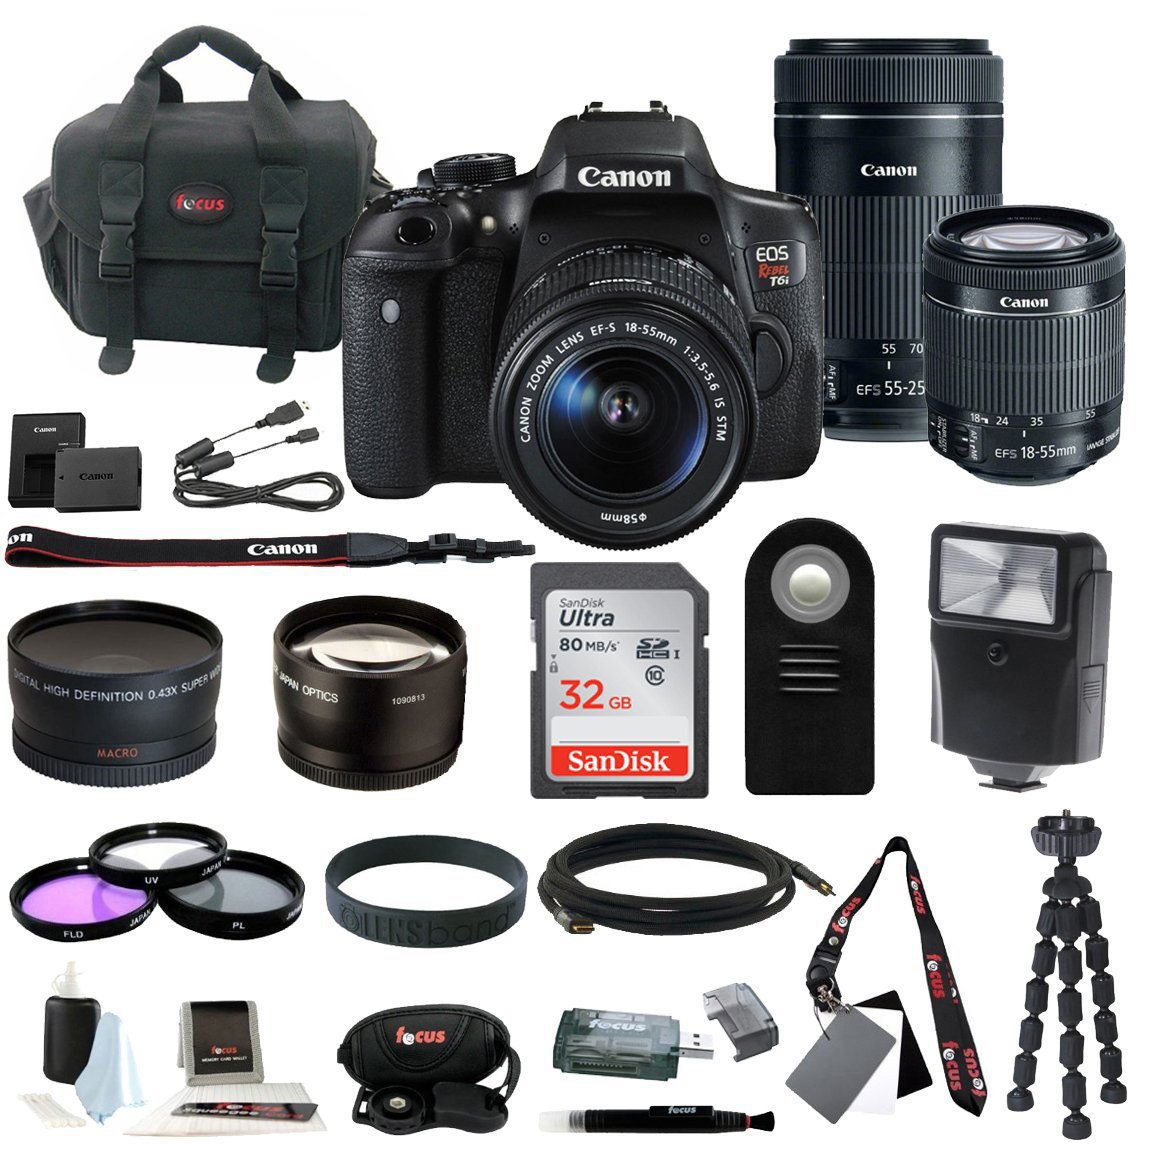 Canon EOS Rebel T6i Digital SLR with EF-S 18-55mm IS STM Kit Lens and Canon EF-S 55-250mm f/4-5.6 IS STM plus 32GB Delux